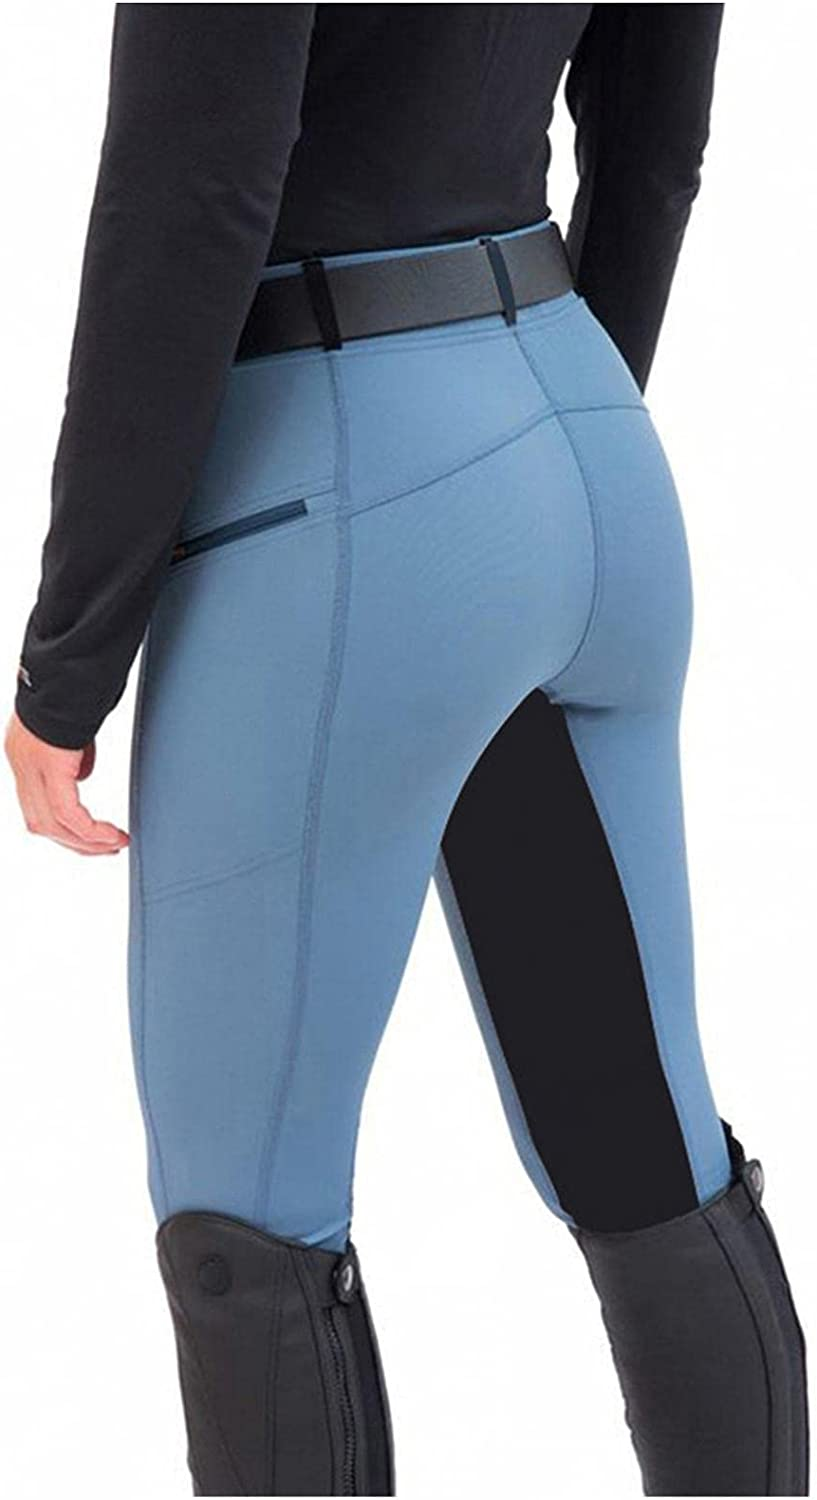 melupa Women's Horse Riding Pants Equestrian Breeches Tights Belt Loops Pockets Patchwork Schooling Active Legging